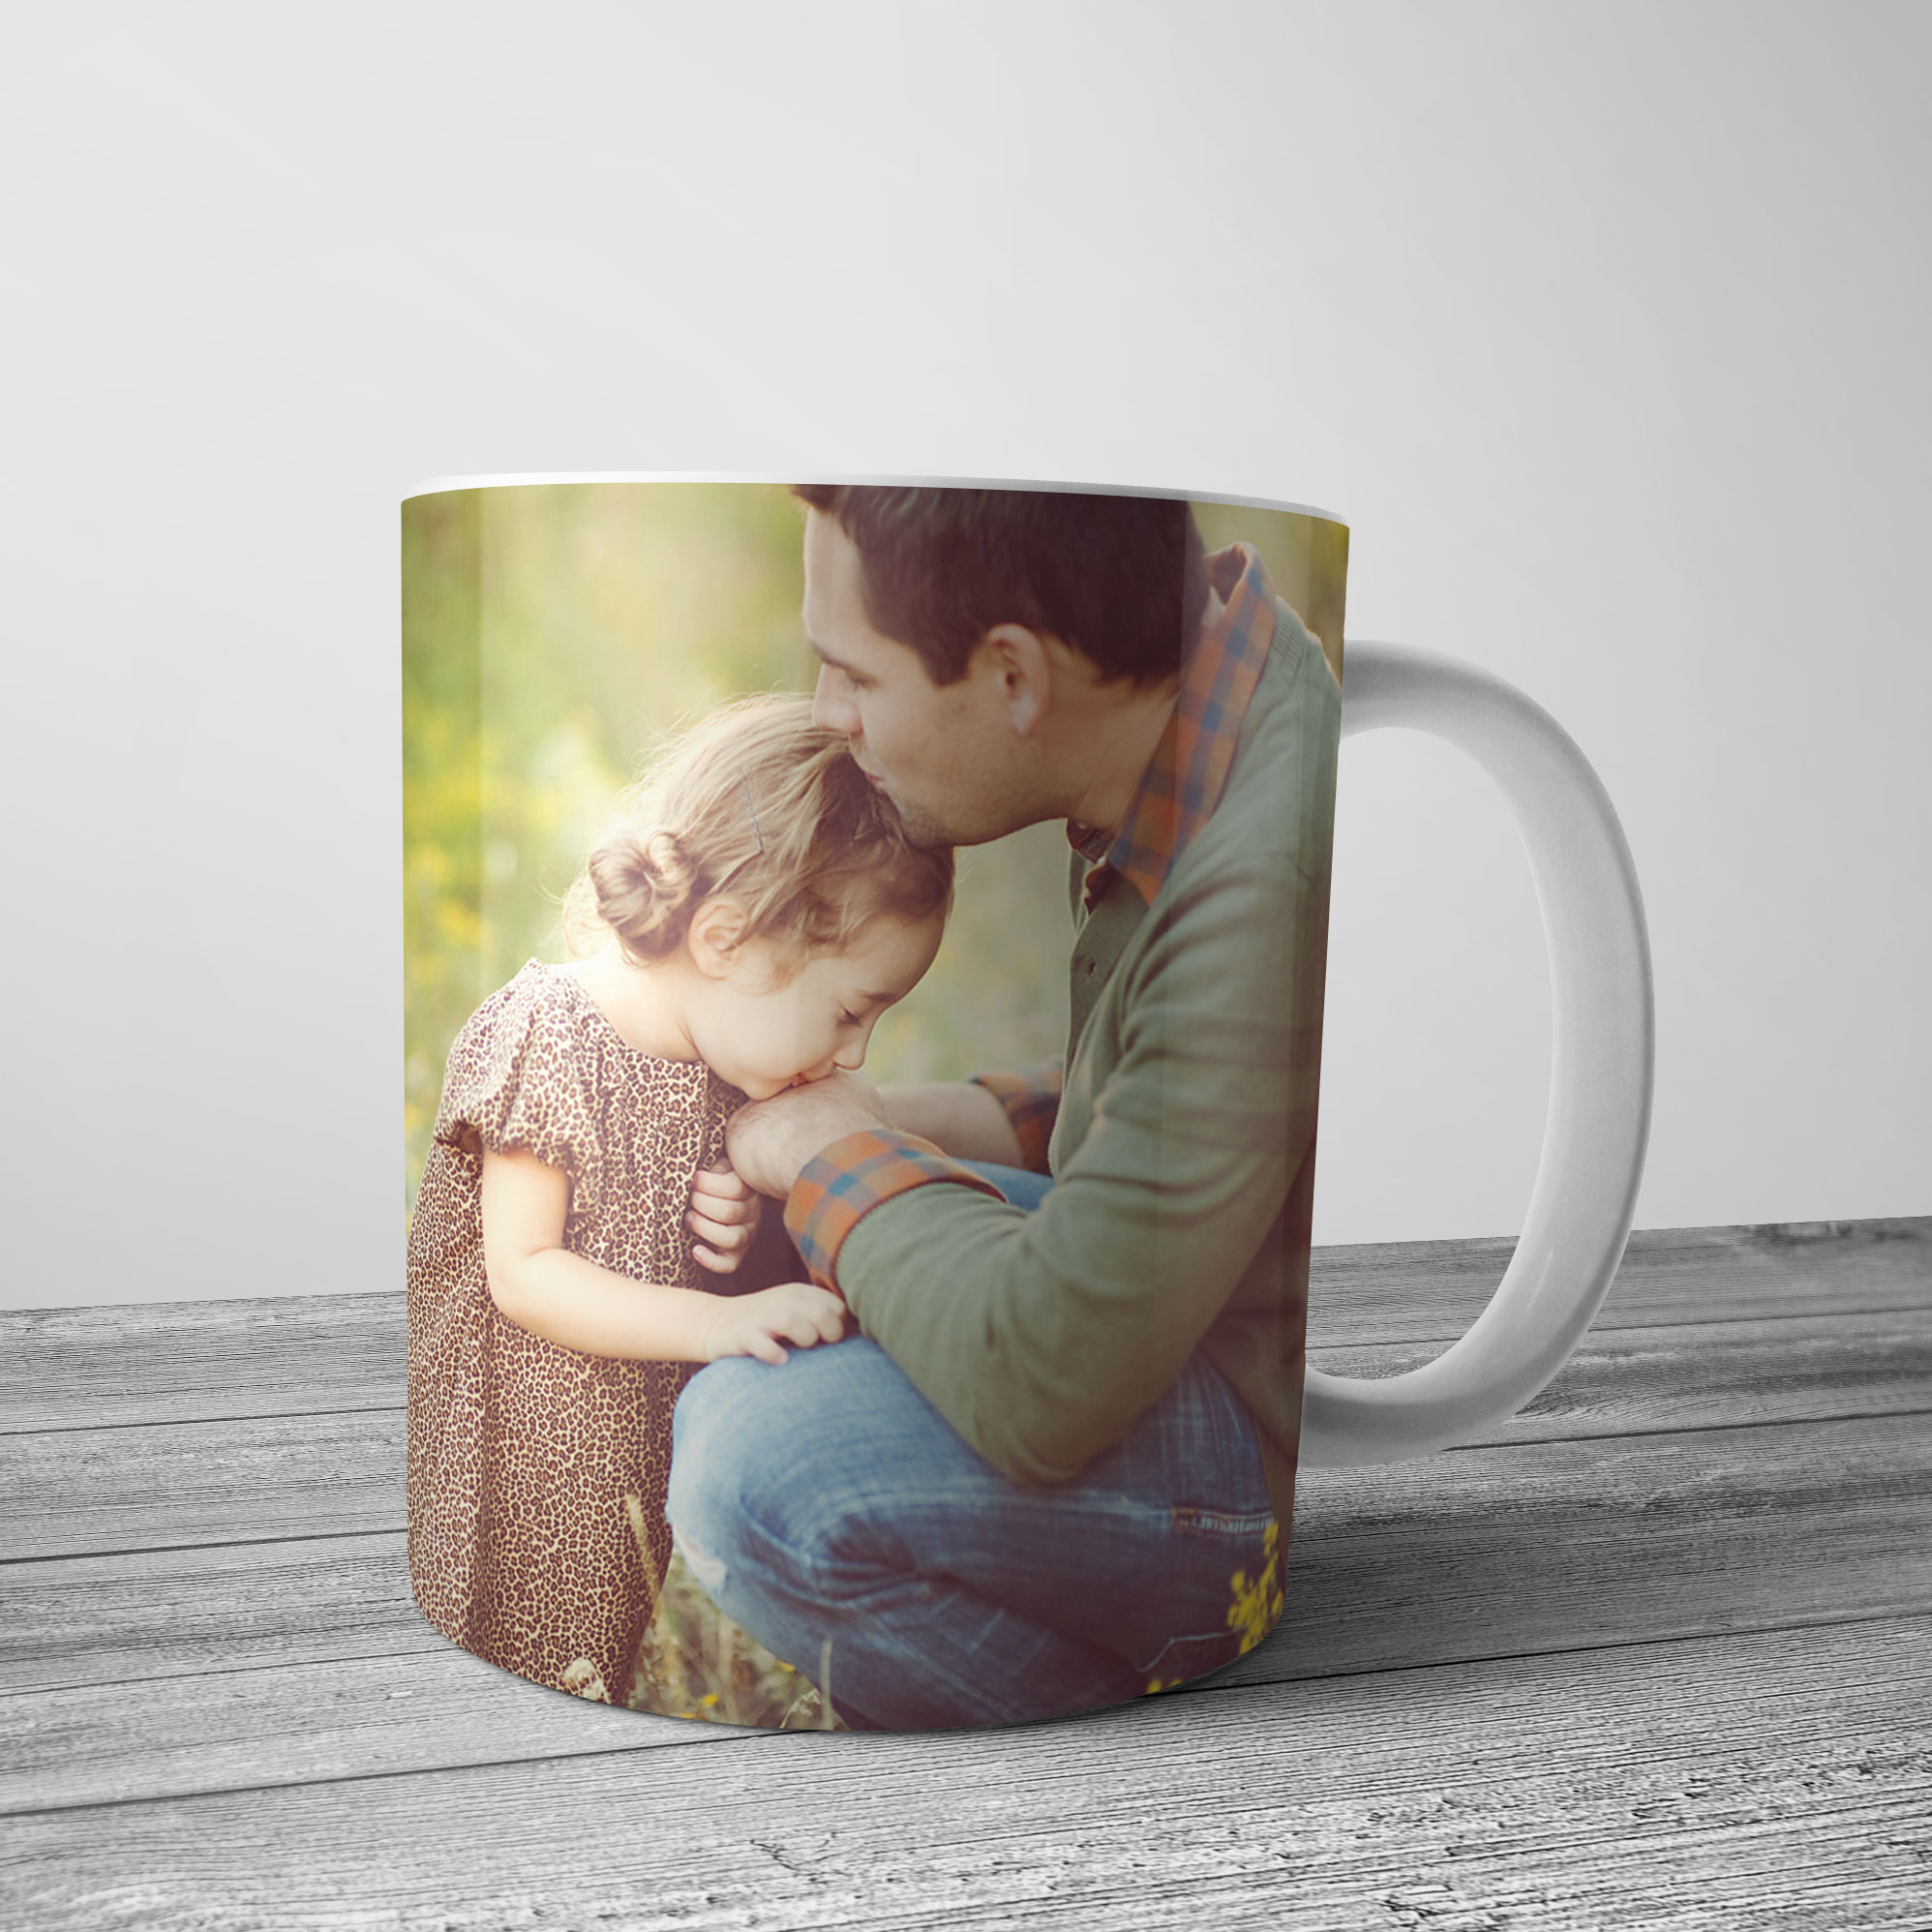 https://www.rasgo.co/images/products_gallery_images/Mug-3.jpg